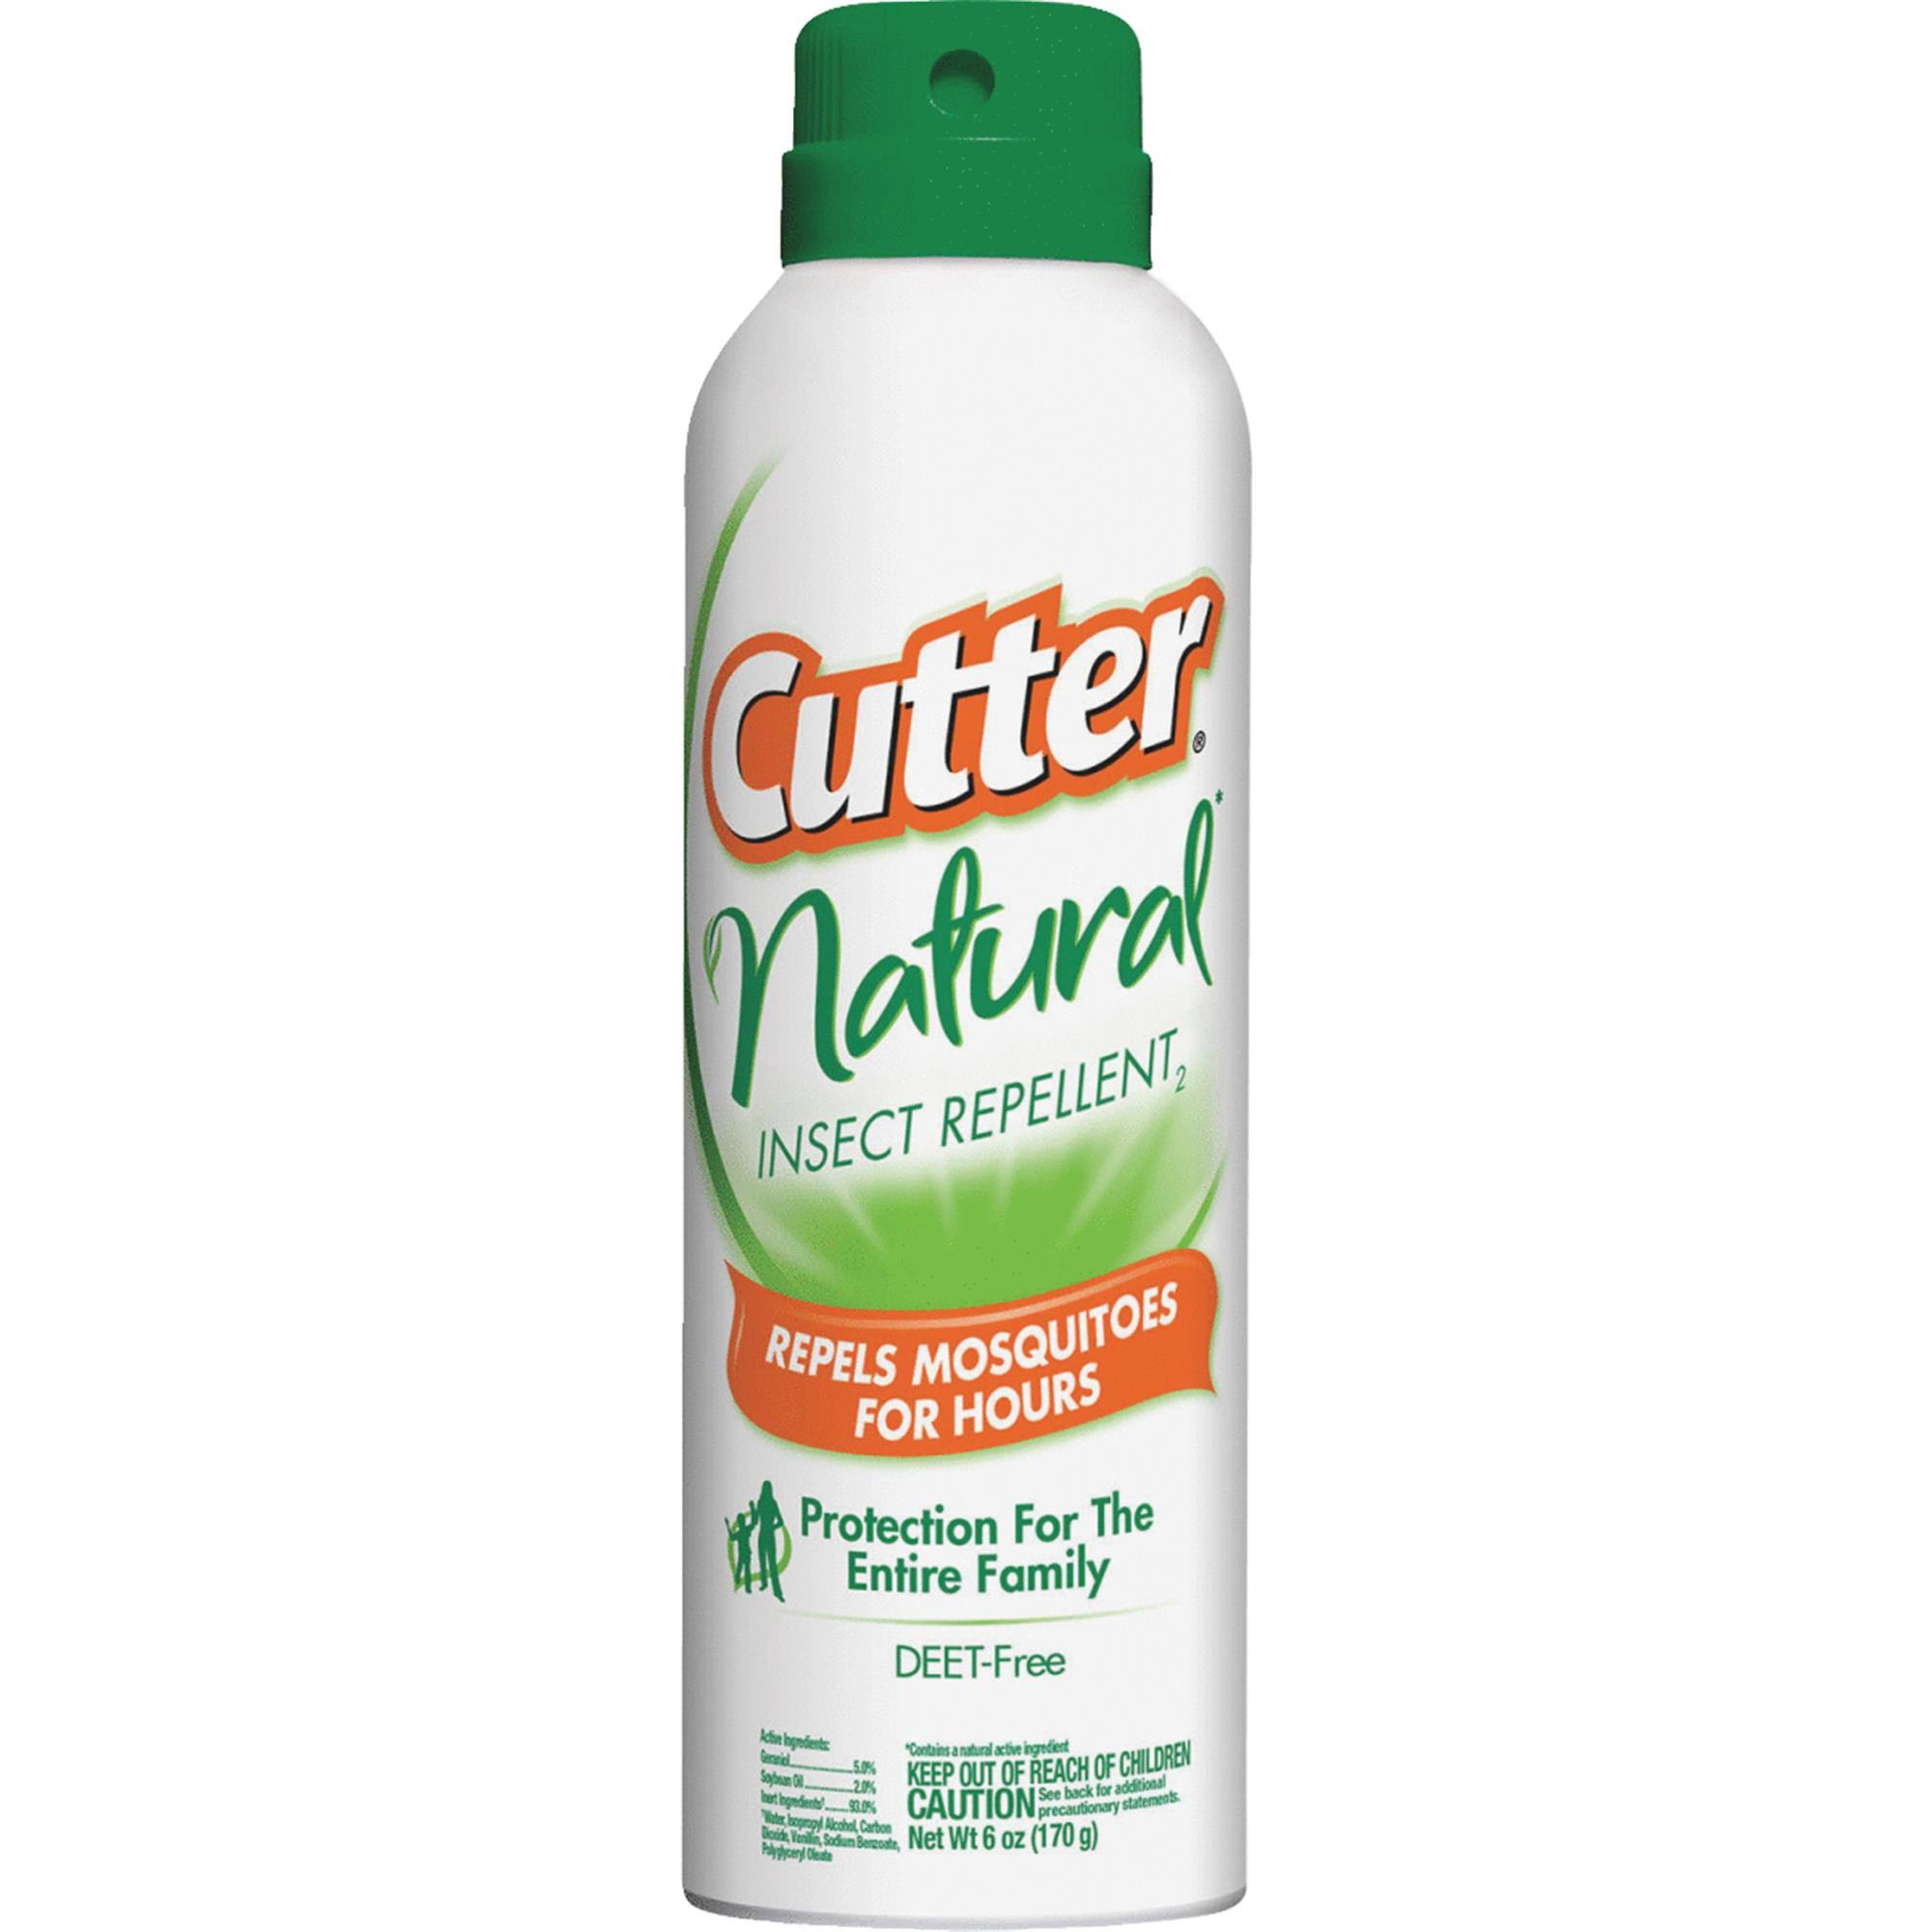 Cutter Insect Repellent - Natural, 6oz